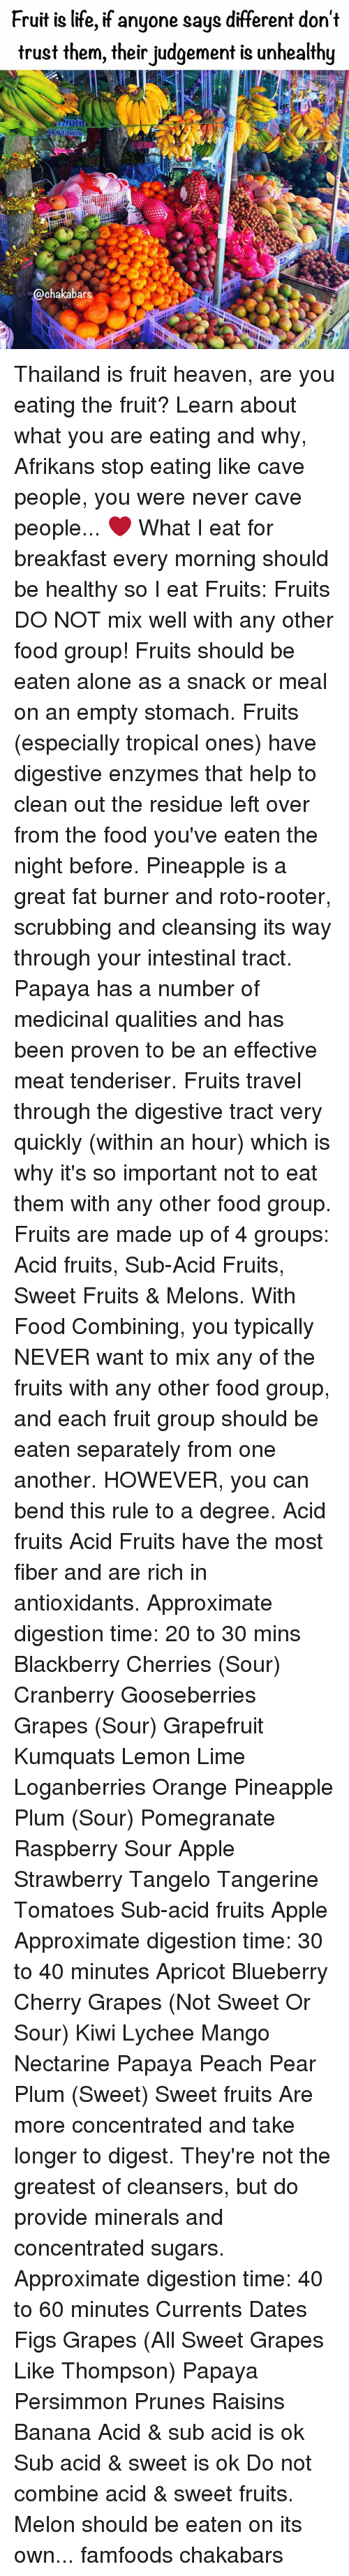 food groups: Fruit is life, if anyone says different don't  trust them, their judgement is unhealthy  38-6870879.  @chakabars Thailand is fruit heaven, are you eating the fruit? Learn about what you are eating and why, Afrikans stop eating like cave people, you were never cave people... ❤️ What I eat for breakfast every morning should be healthy so I eat Fruits: Fruits DO NOT mix well with any other food group! Fruits should be eaten alone as a snack or meal on an empty stomach. Fruits (especially tropical ones) have digestive enzymes that help to clean out the residue left over from the food you've eaten the night before. Pineapple is a great fat burner and roto-rooter, scrubbing and cleansing its way through your intestinal tract. Papaya has a number of medicinal qualities and has been proven to be an effective meat tenderiser. Fruits travel through the digestive tract very quickly (within an hour) which is why it's so important not to eat them with any other food group. Fruits are made up of 4 groups: Acid fruits, Sub-Acid Fruits, Sweet Fruits & Melons. With Food Combining, you typically NEVER want to mix any of the fruits with any other food group, and each fruit group should be eaten separately from one another. HOWEVER, you can bend this rule to a degree. Acid fruits Acid Fruits have the most fiber and are rich in antioxidants. Approximate digestion time: 20 to 30 mins Blackberry Cherries (Sour) Cranberry Gooseberries Grapes (Sour) Grapefruit Kumquats Lemon Lime Loganberries Orange Pineapple Plum (Sour) Pomegranate Raspberry Sour Apple Strawberry Tangelo Tangerine Tomatoes Sub-acid fruits Apple Approximate digestion time: 30 to 40 minutes Apricot Blueberry Cherry Grapes (Not Sweet Or Sour) Kiwi Lychee Mango Nectarine Papaya Peach Pear Plum (Sweet) Sweet fruits Are more concentrated and take longer to digest. They're not the greatest of cleansers, but do provide minerals and concentrated sugars. Approximate digestion time: 40 to 60 minutes Currents Dates Figs G